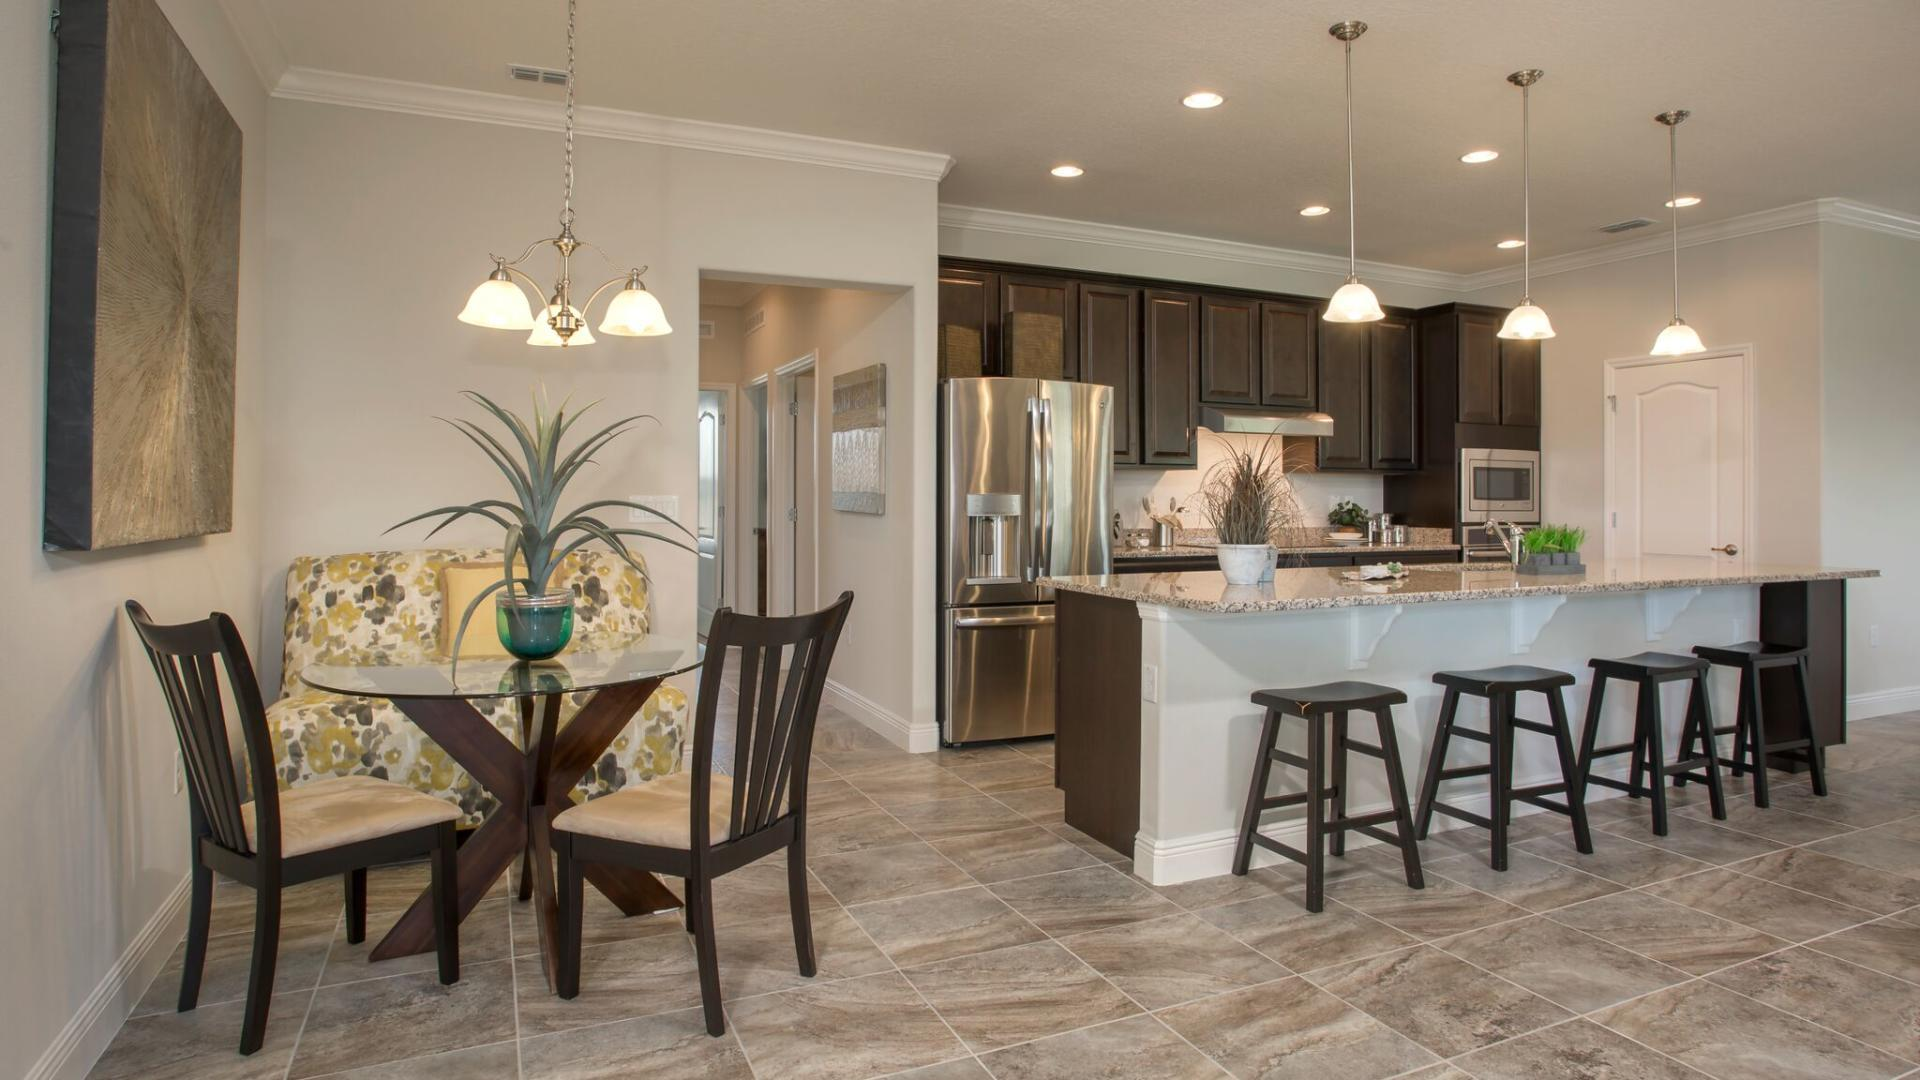 Kitchen featured in the Harmony By Maronda Homes in Indian River County, FL